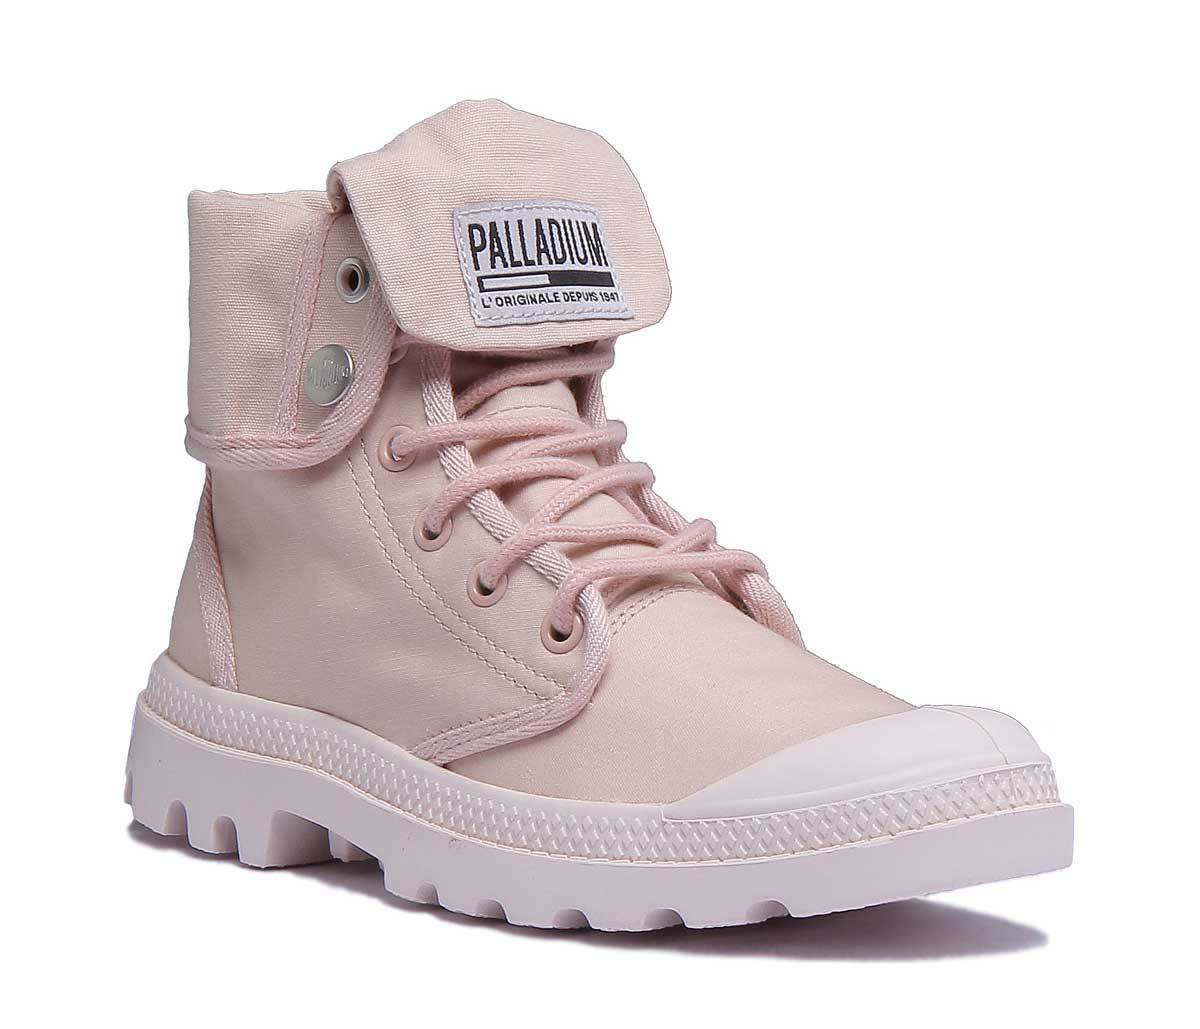 Palladium Army Trng Camp Womens pink gold Canvas Boots Size